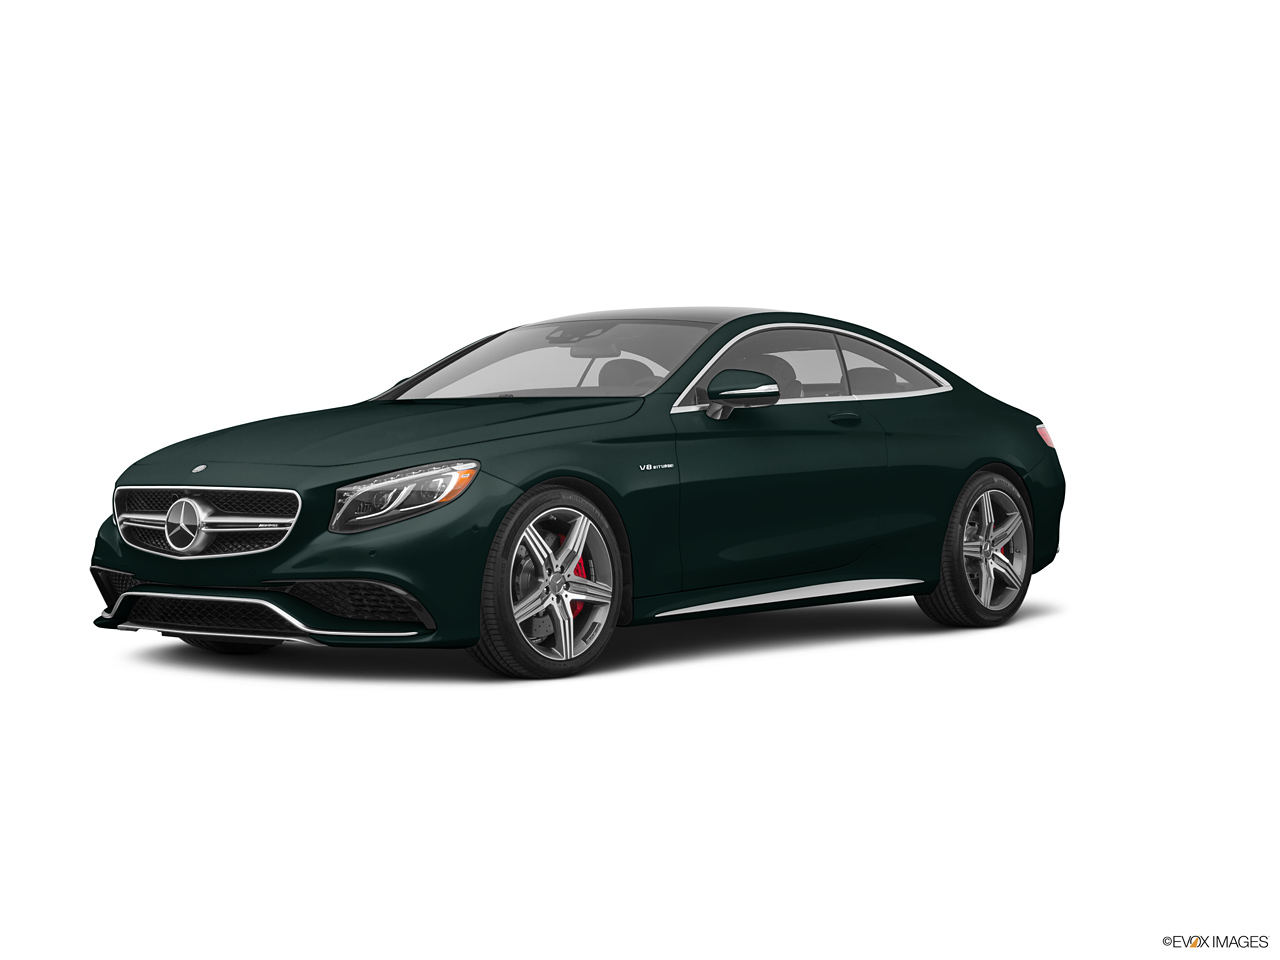 Car pictures list for mercedes benz s 63 amg coupe 2017 for Mercedes benz payment estimator